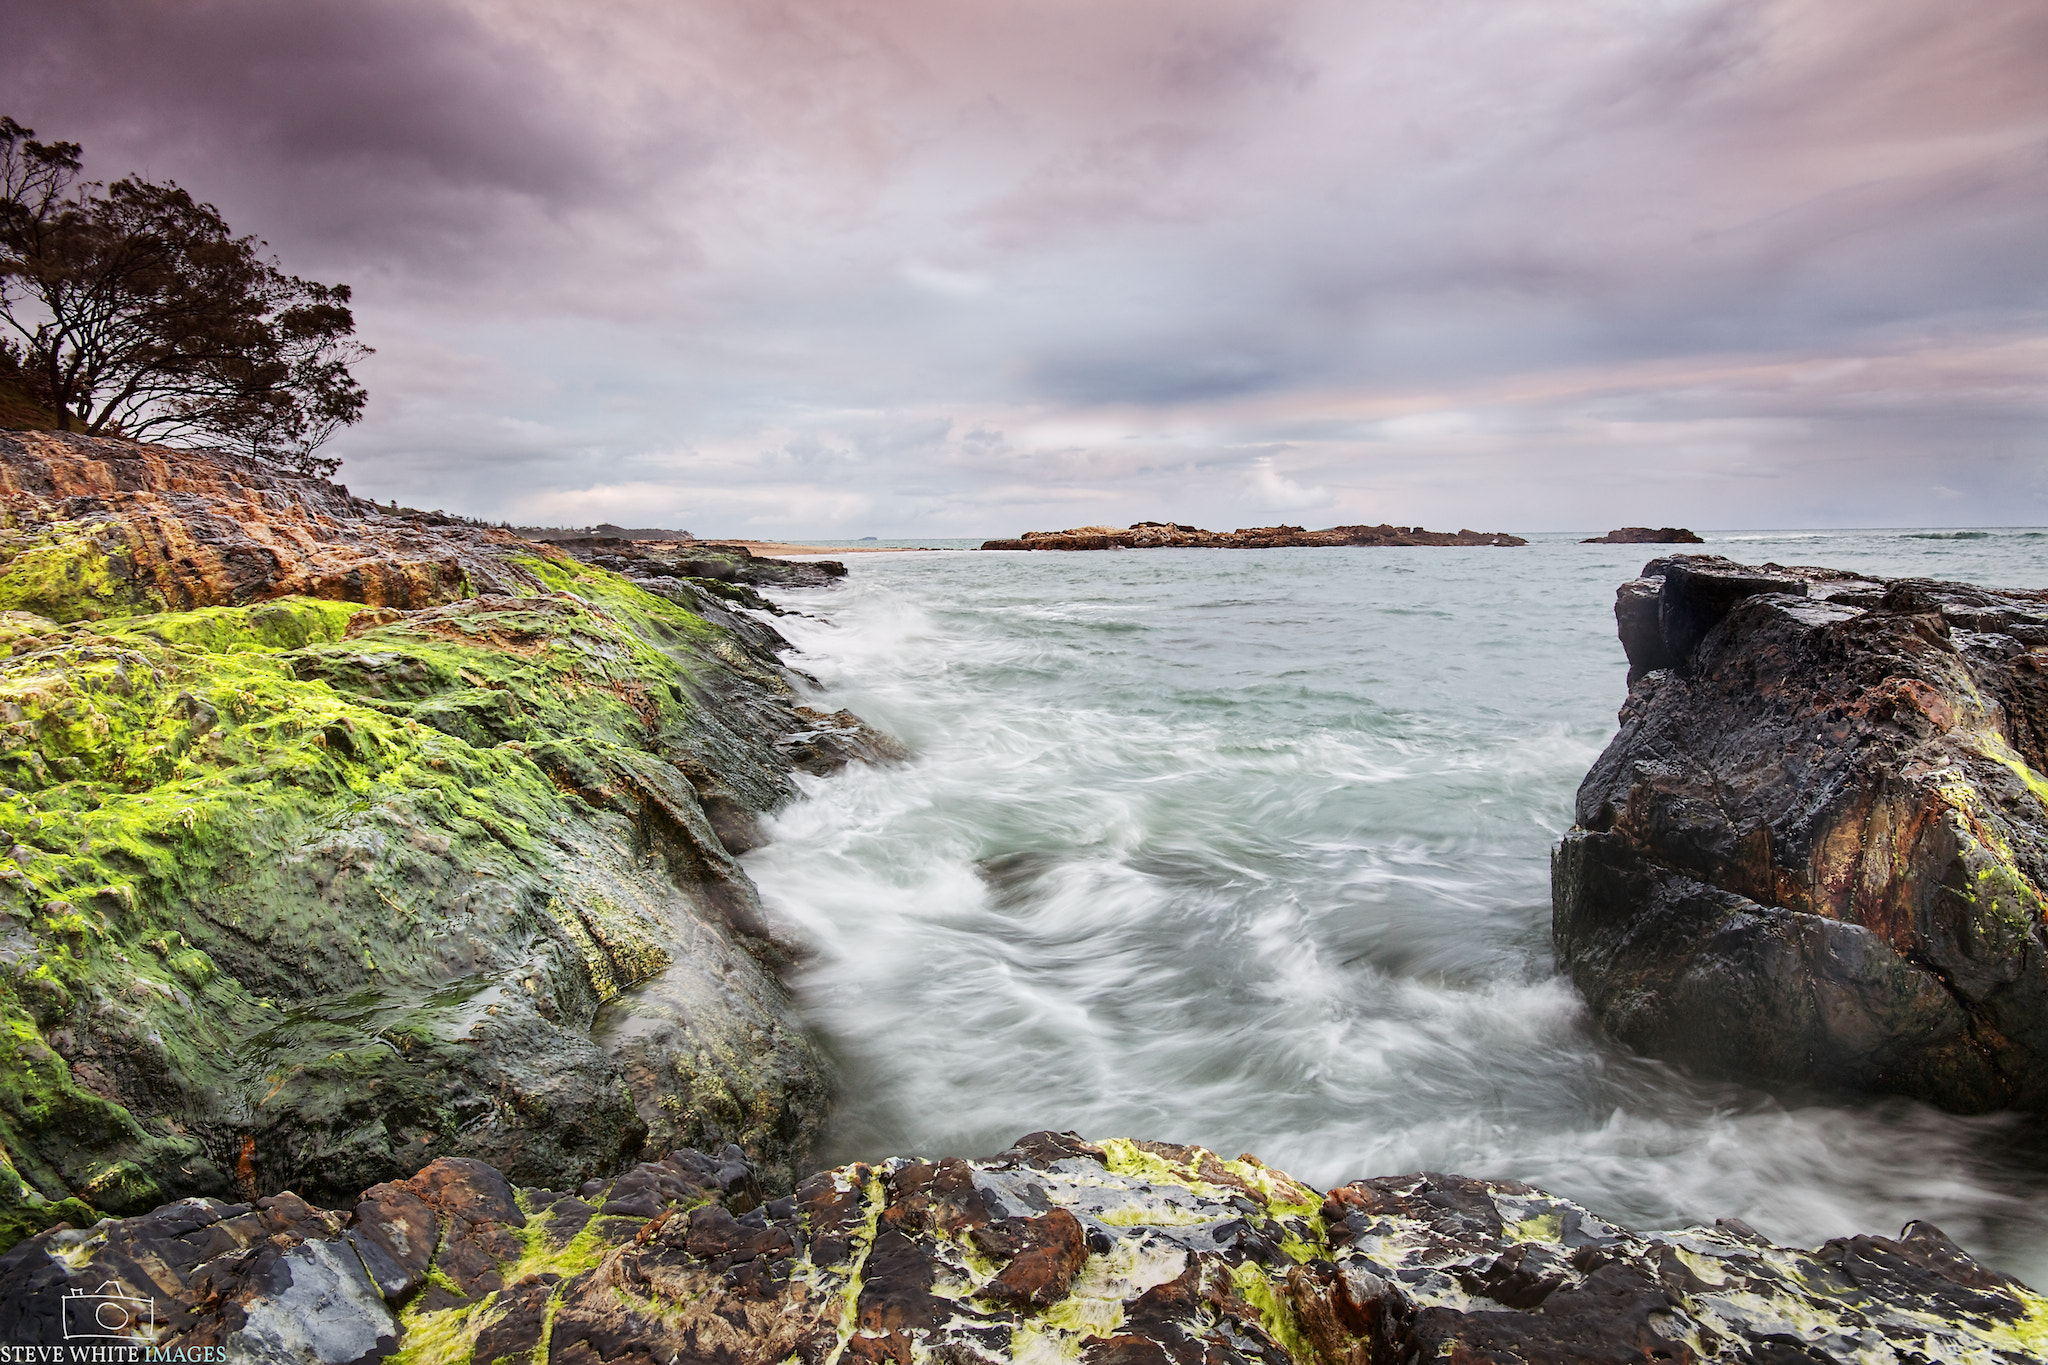 Photograph Opal Cove II by Steve White on 500px